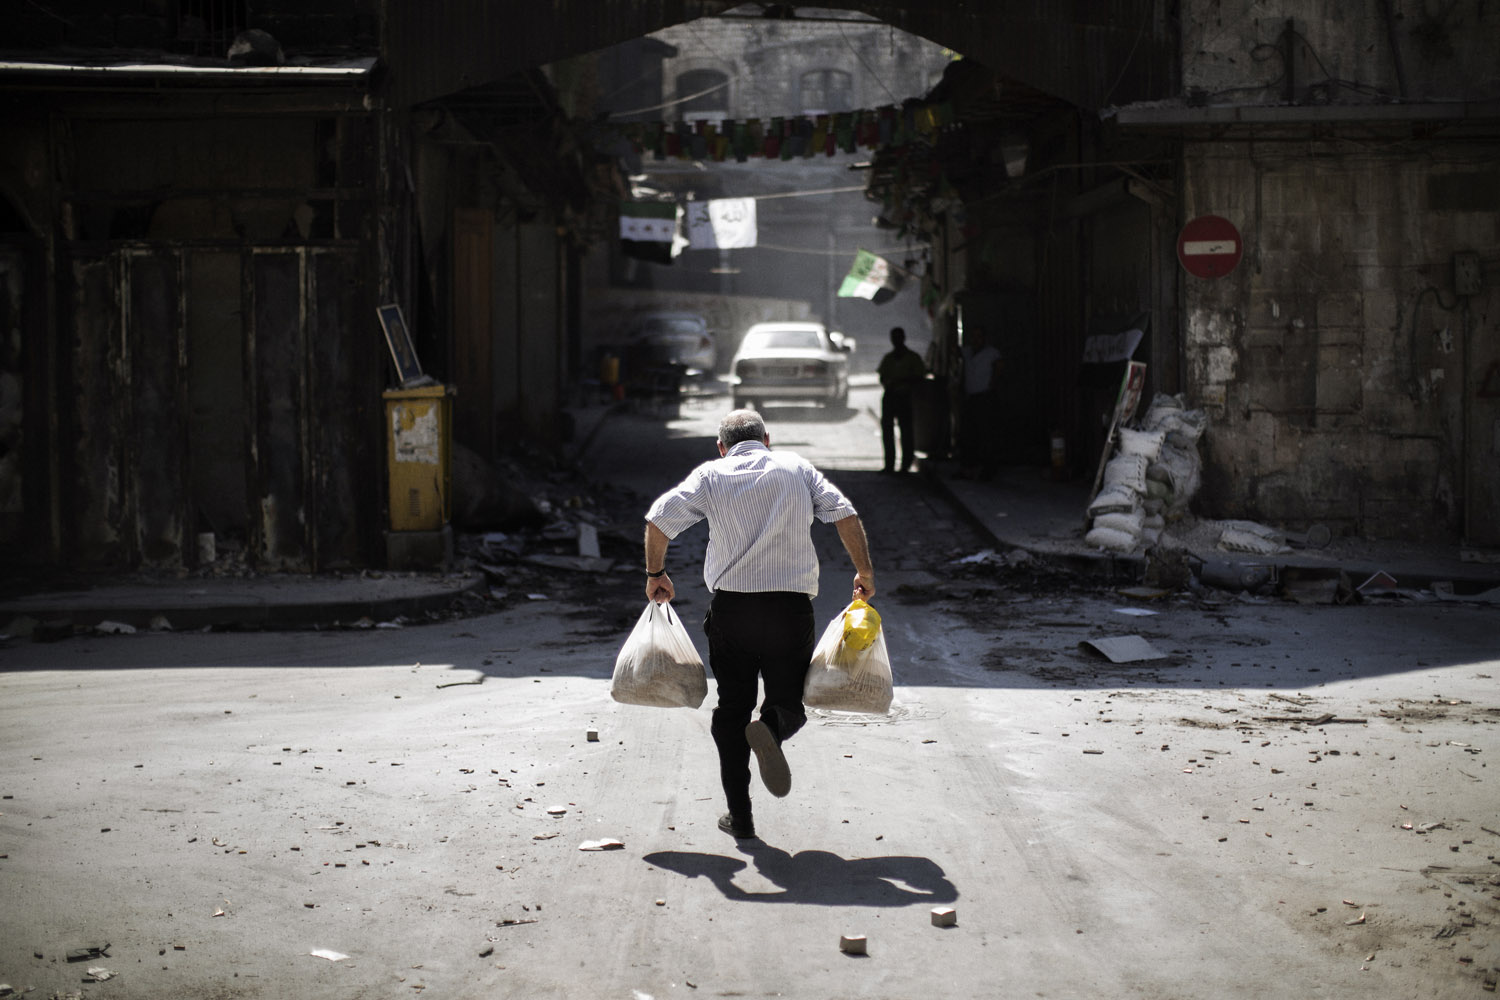 Sept. 14, 2012. A Syrian man carrying grocery bags tries to dodge sniper fire as he runs through an alley near a checkpoint manned by the Free Syria Army in the northern city of Aleppo.